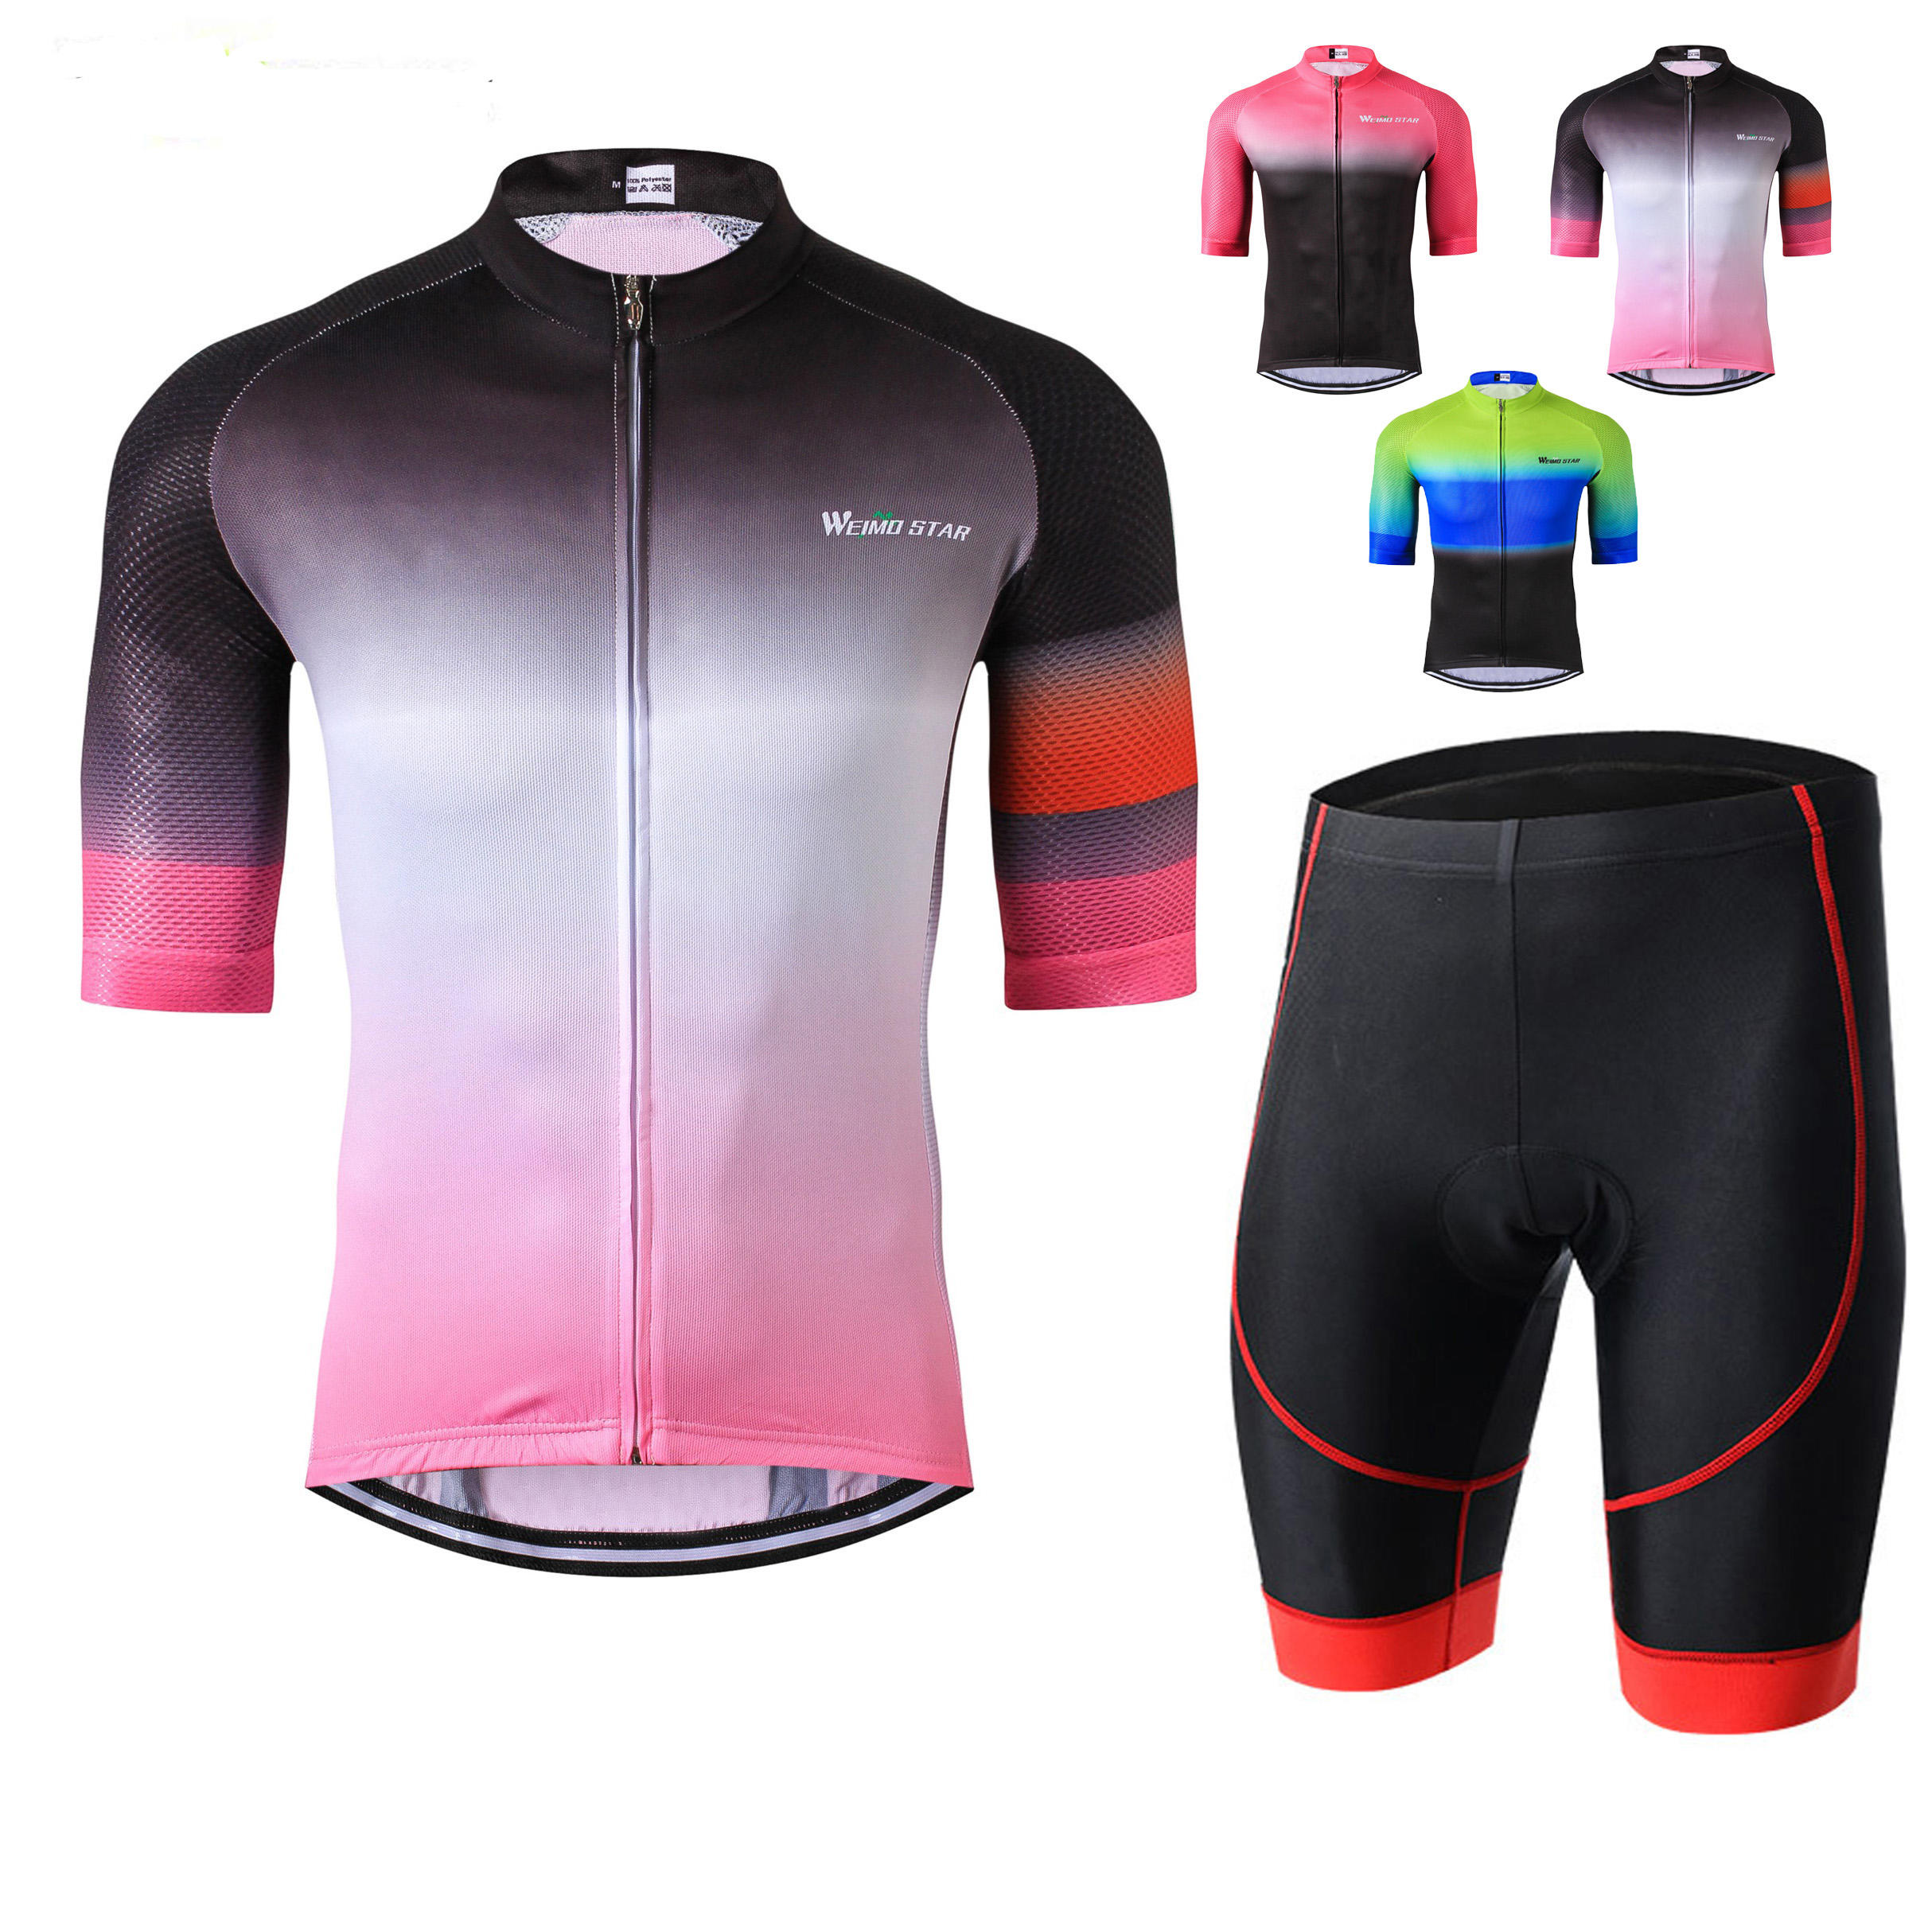 Pro Team Manufacturer Bicycle Clothes Wholesale Short Sleeve Cycling Jersey Set Men Bib Shorts mtb Road Bike Jersey Kits